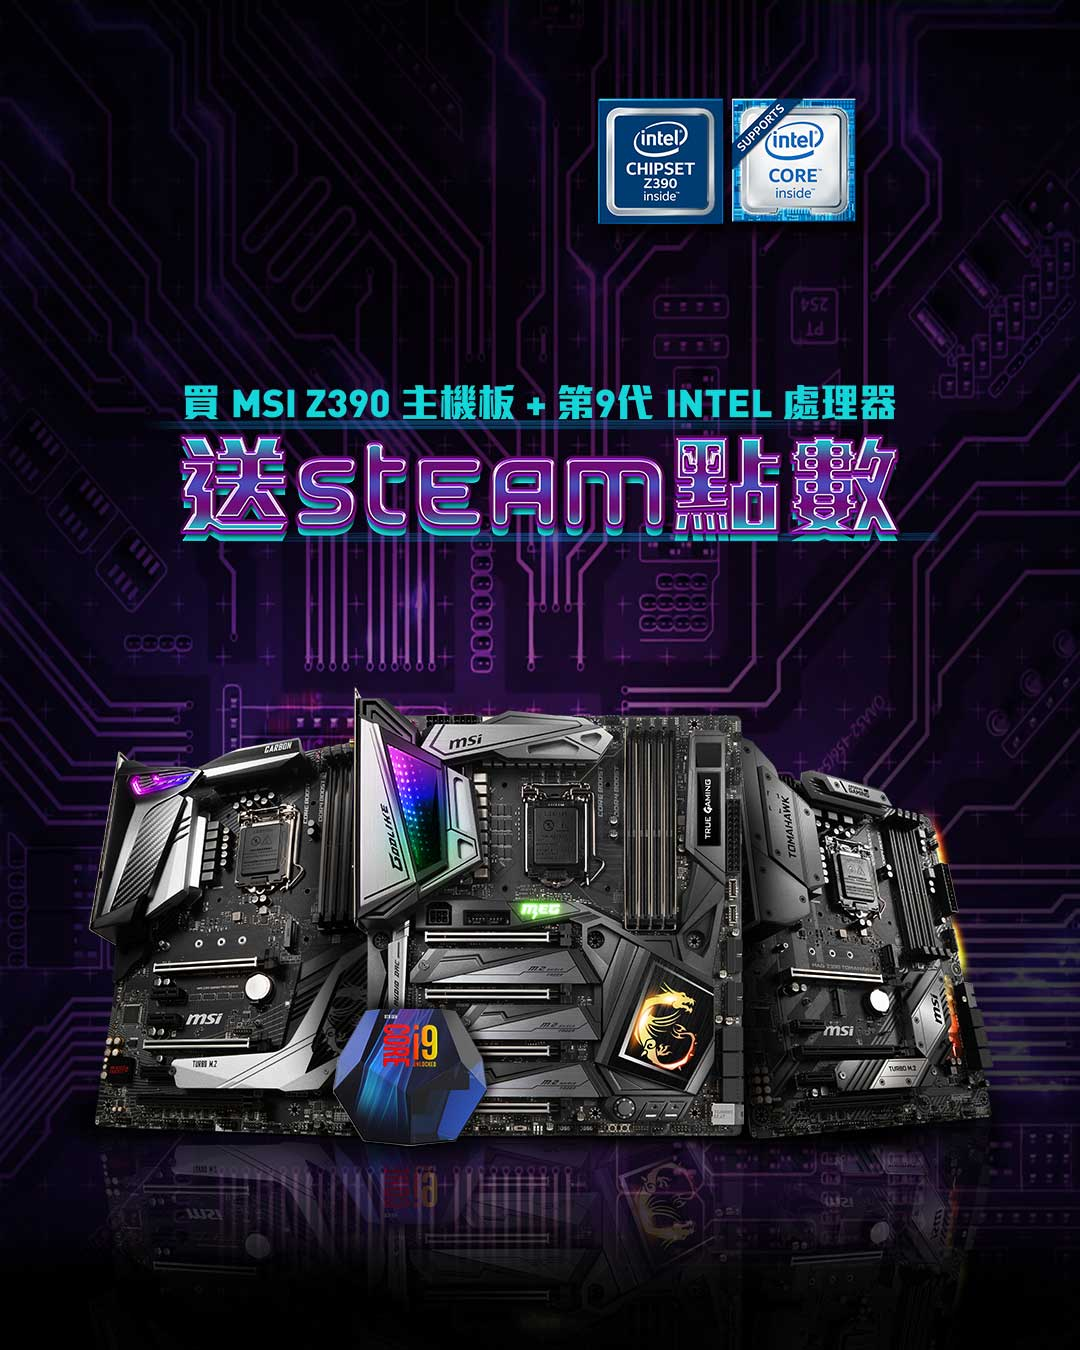 Buy selected MSI Z390 motherboard and Intel 9th gen CPU to get steam wallet